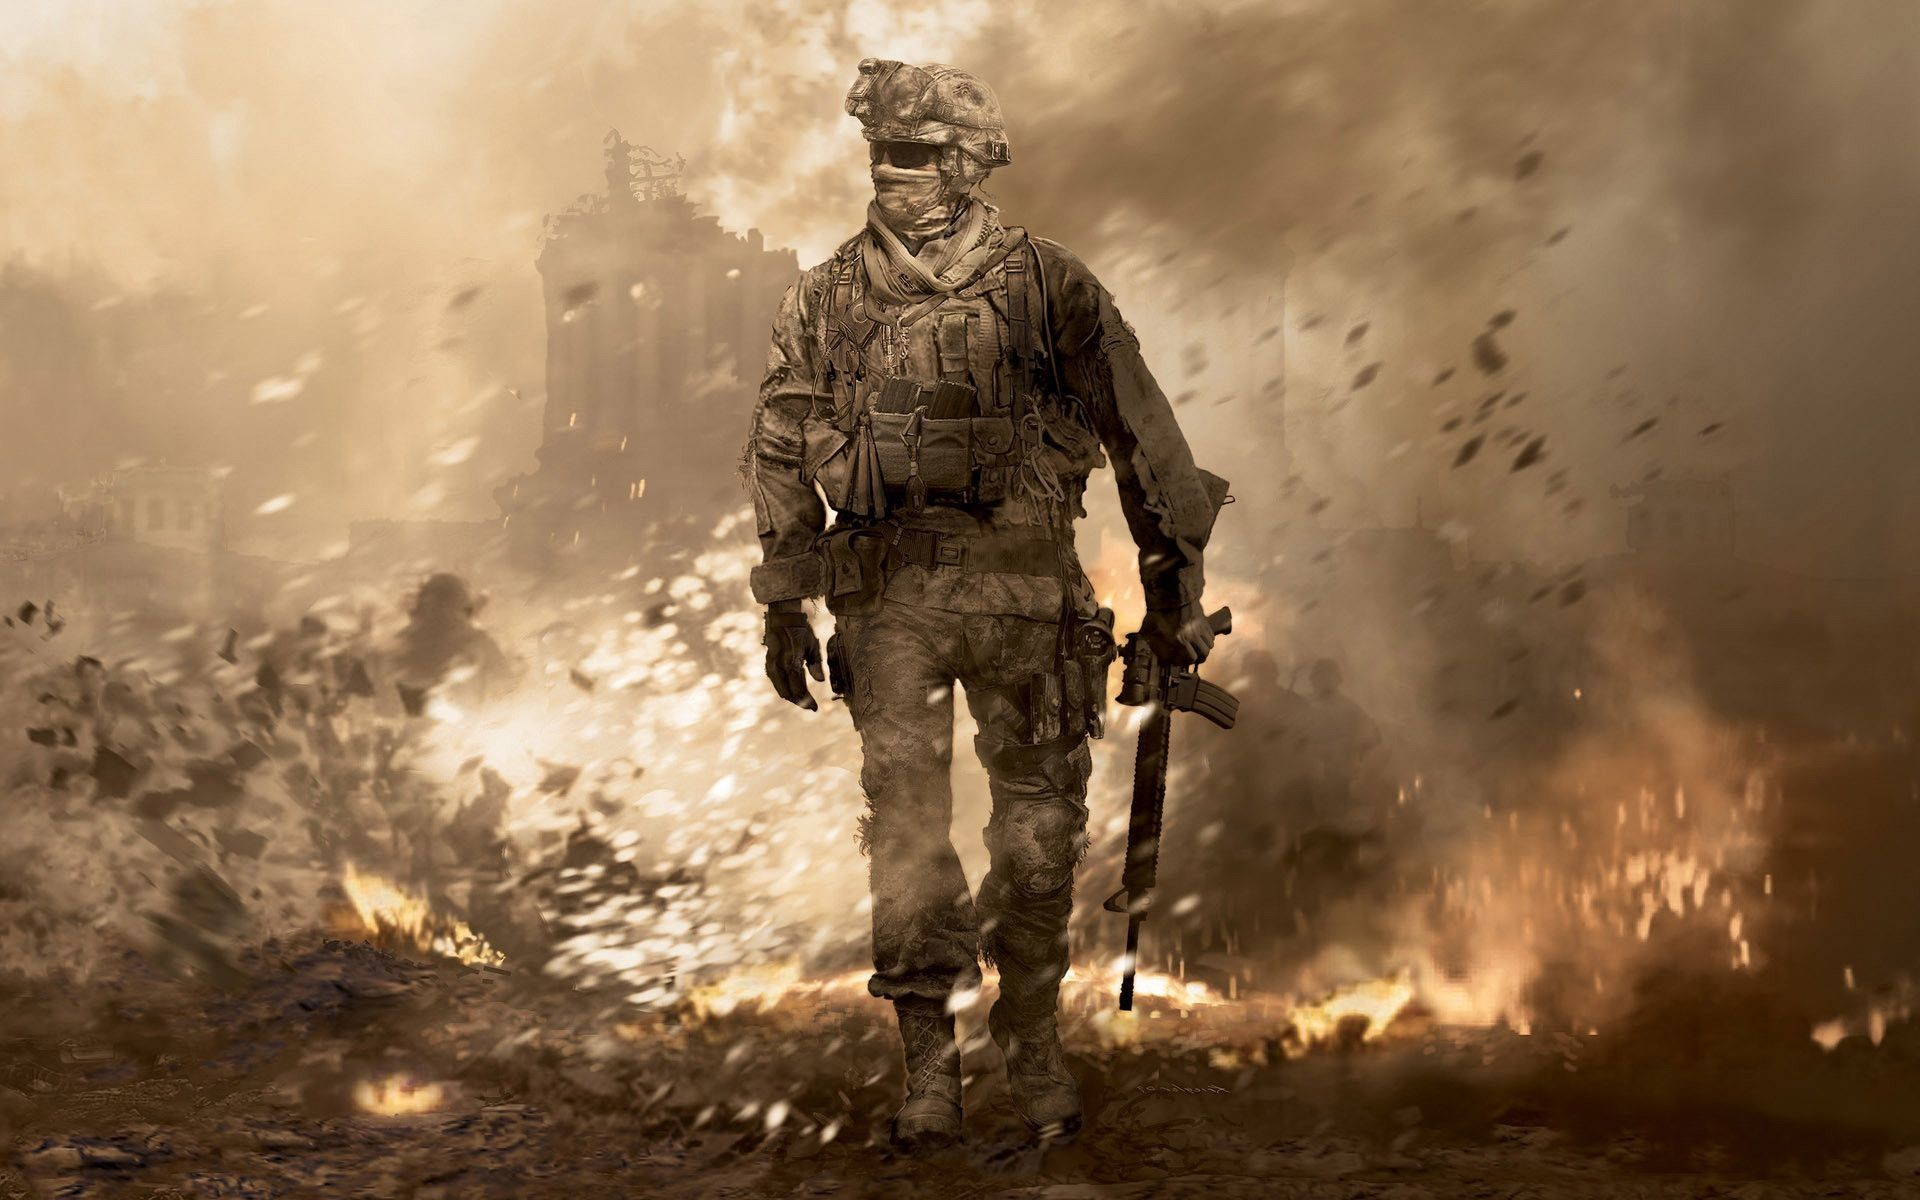 Mw2 Ghost Wallpaper (71+ images)